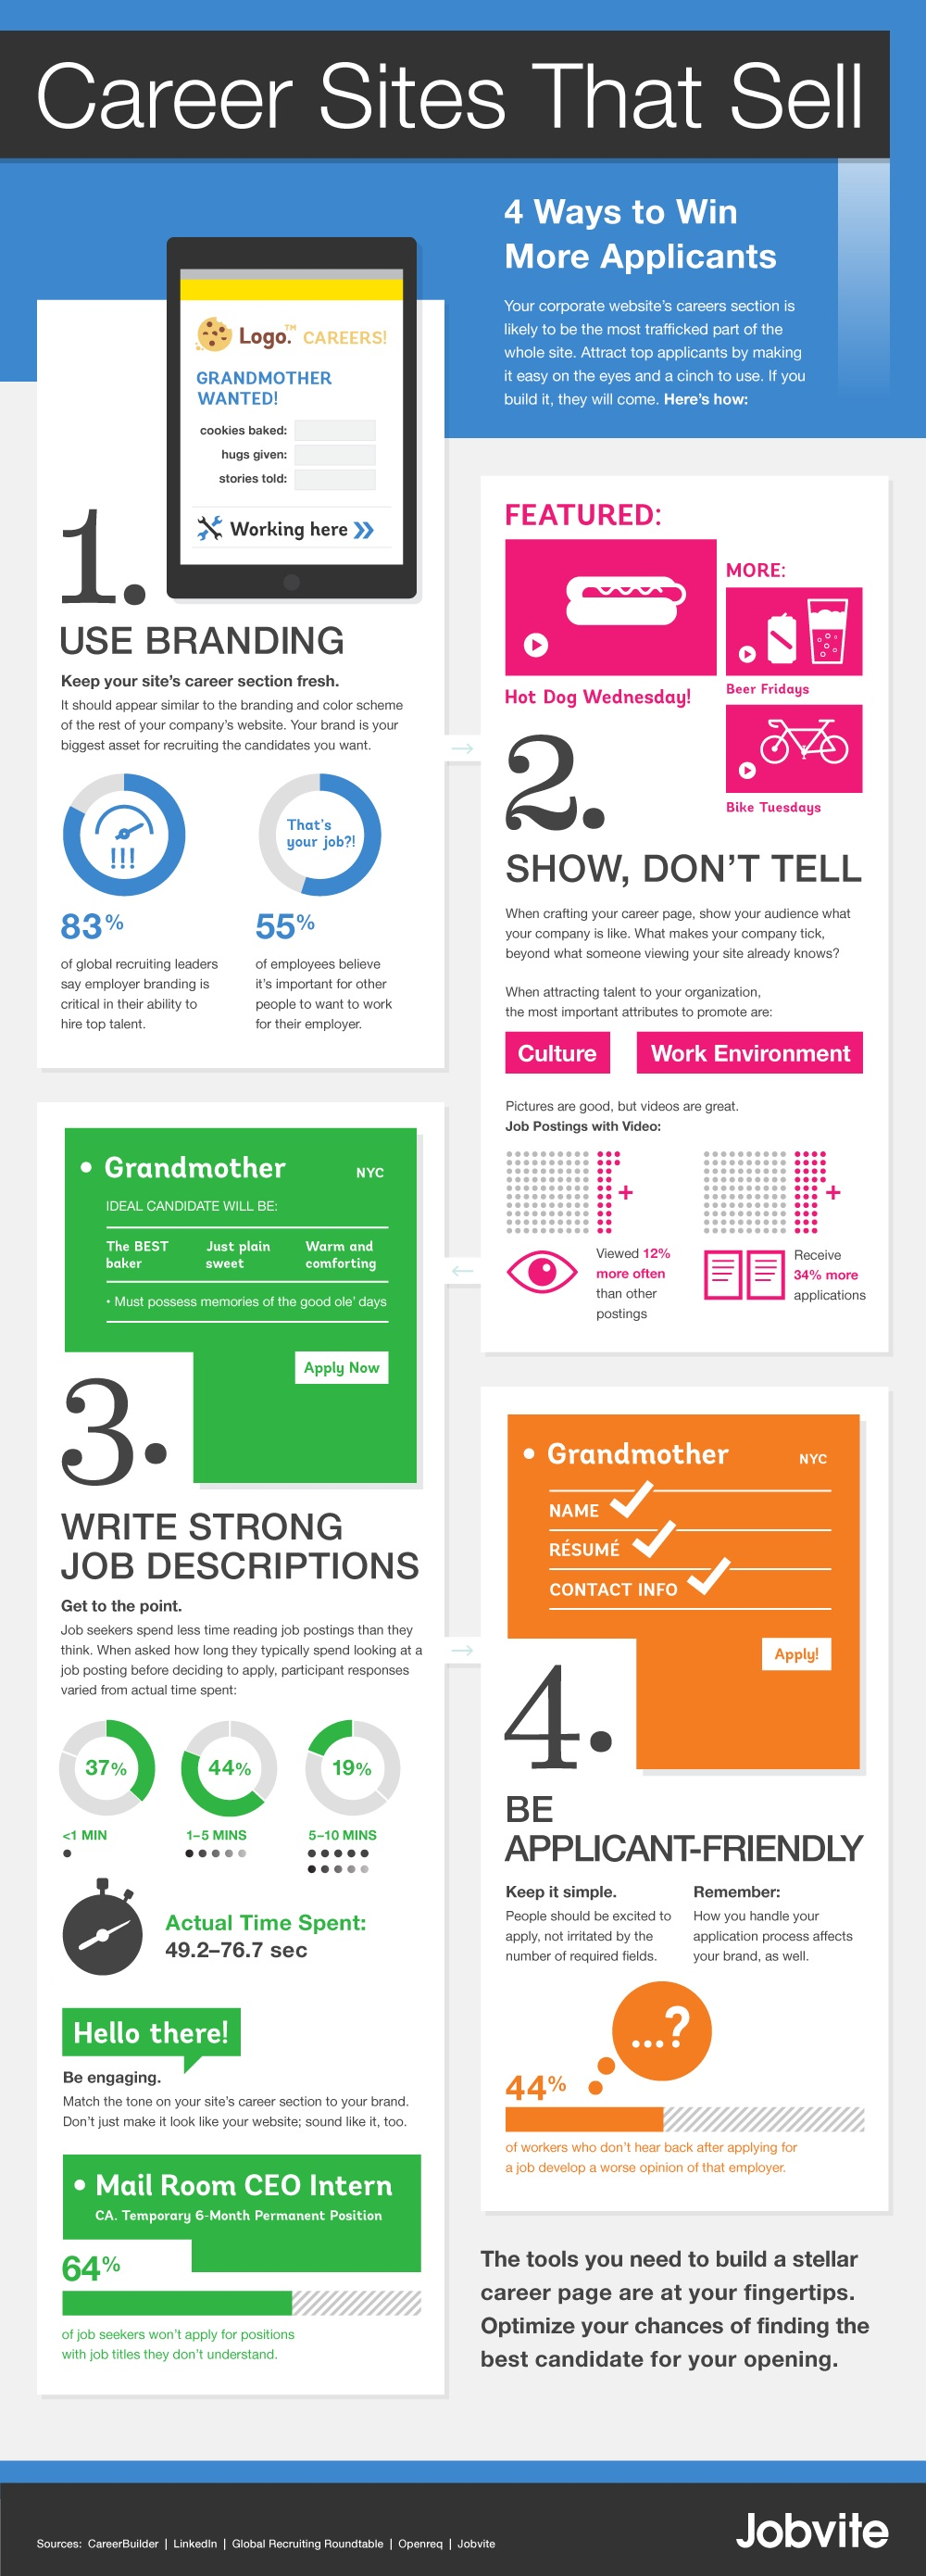 Career-Sites-That-Sell-Infographic